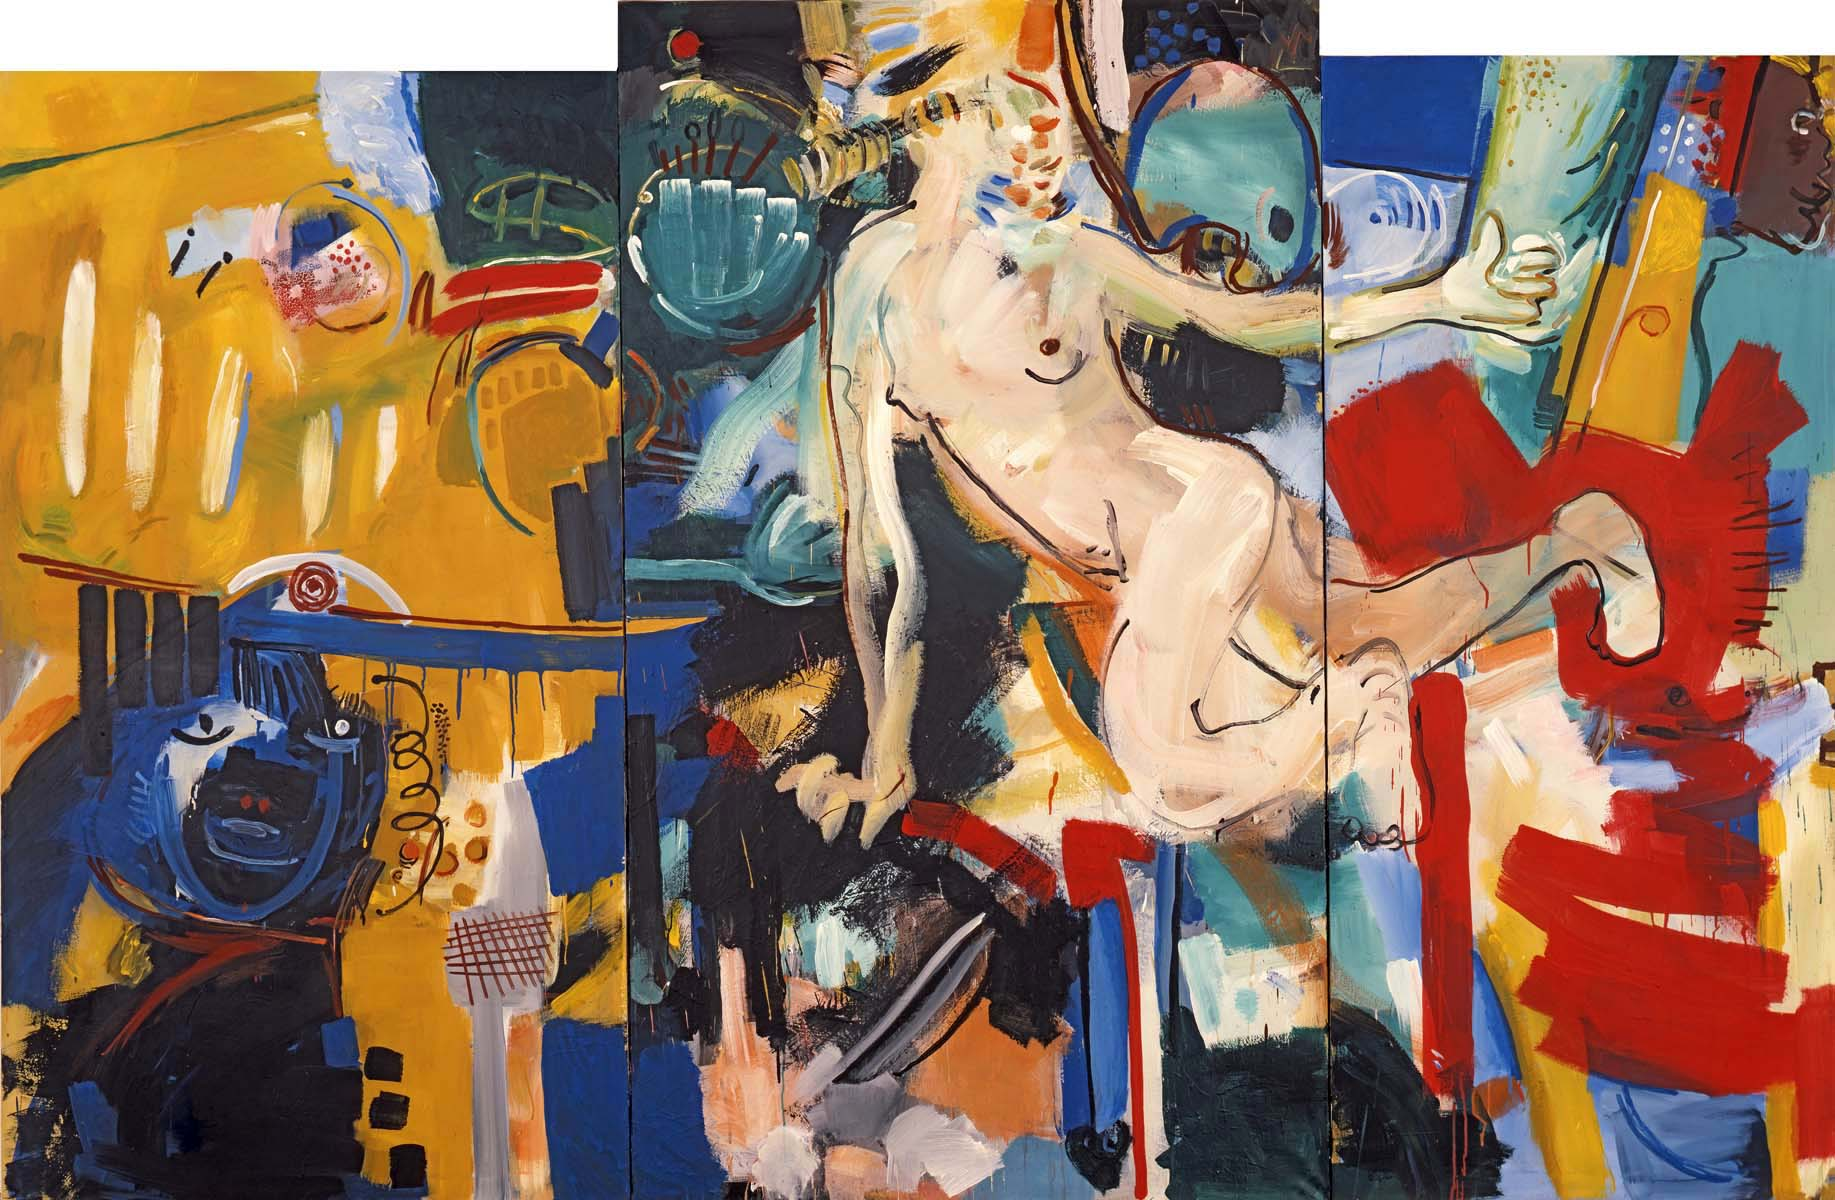 1989-5_bad-better- best_tryptichon_1989_acryl-leinwand_190x300cm